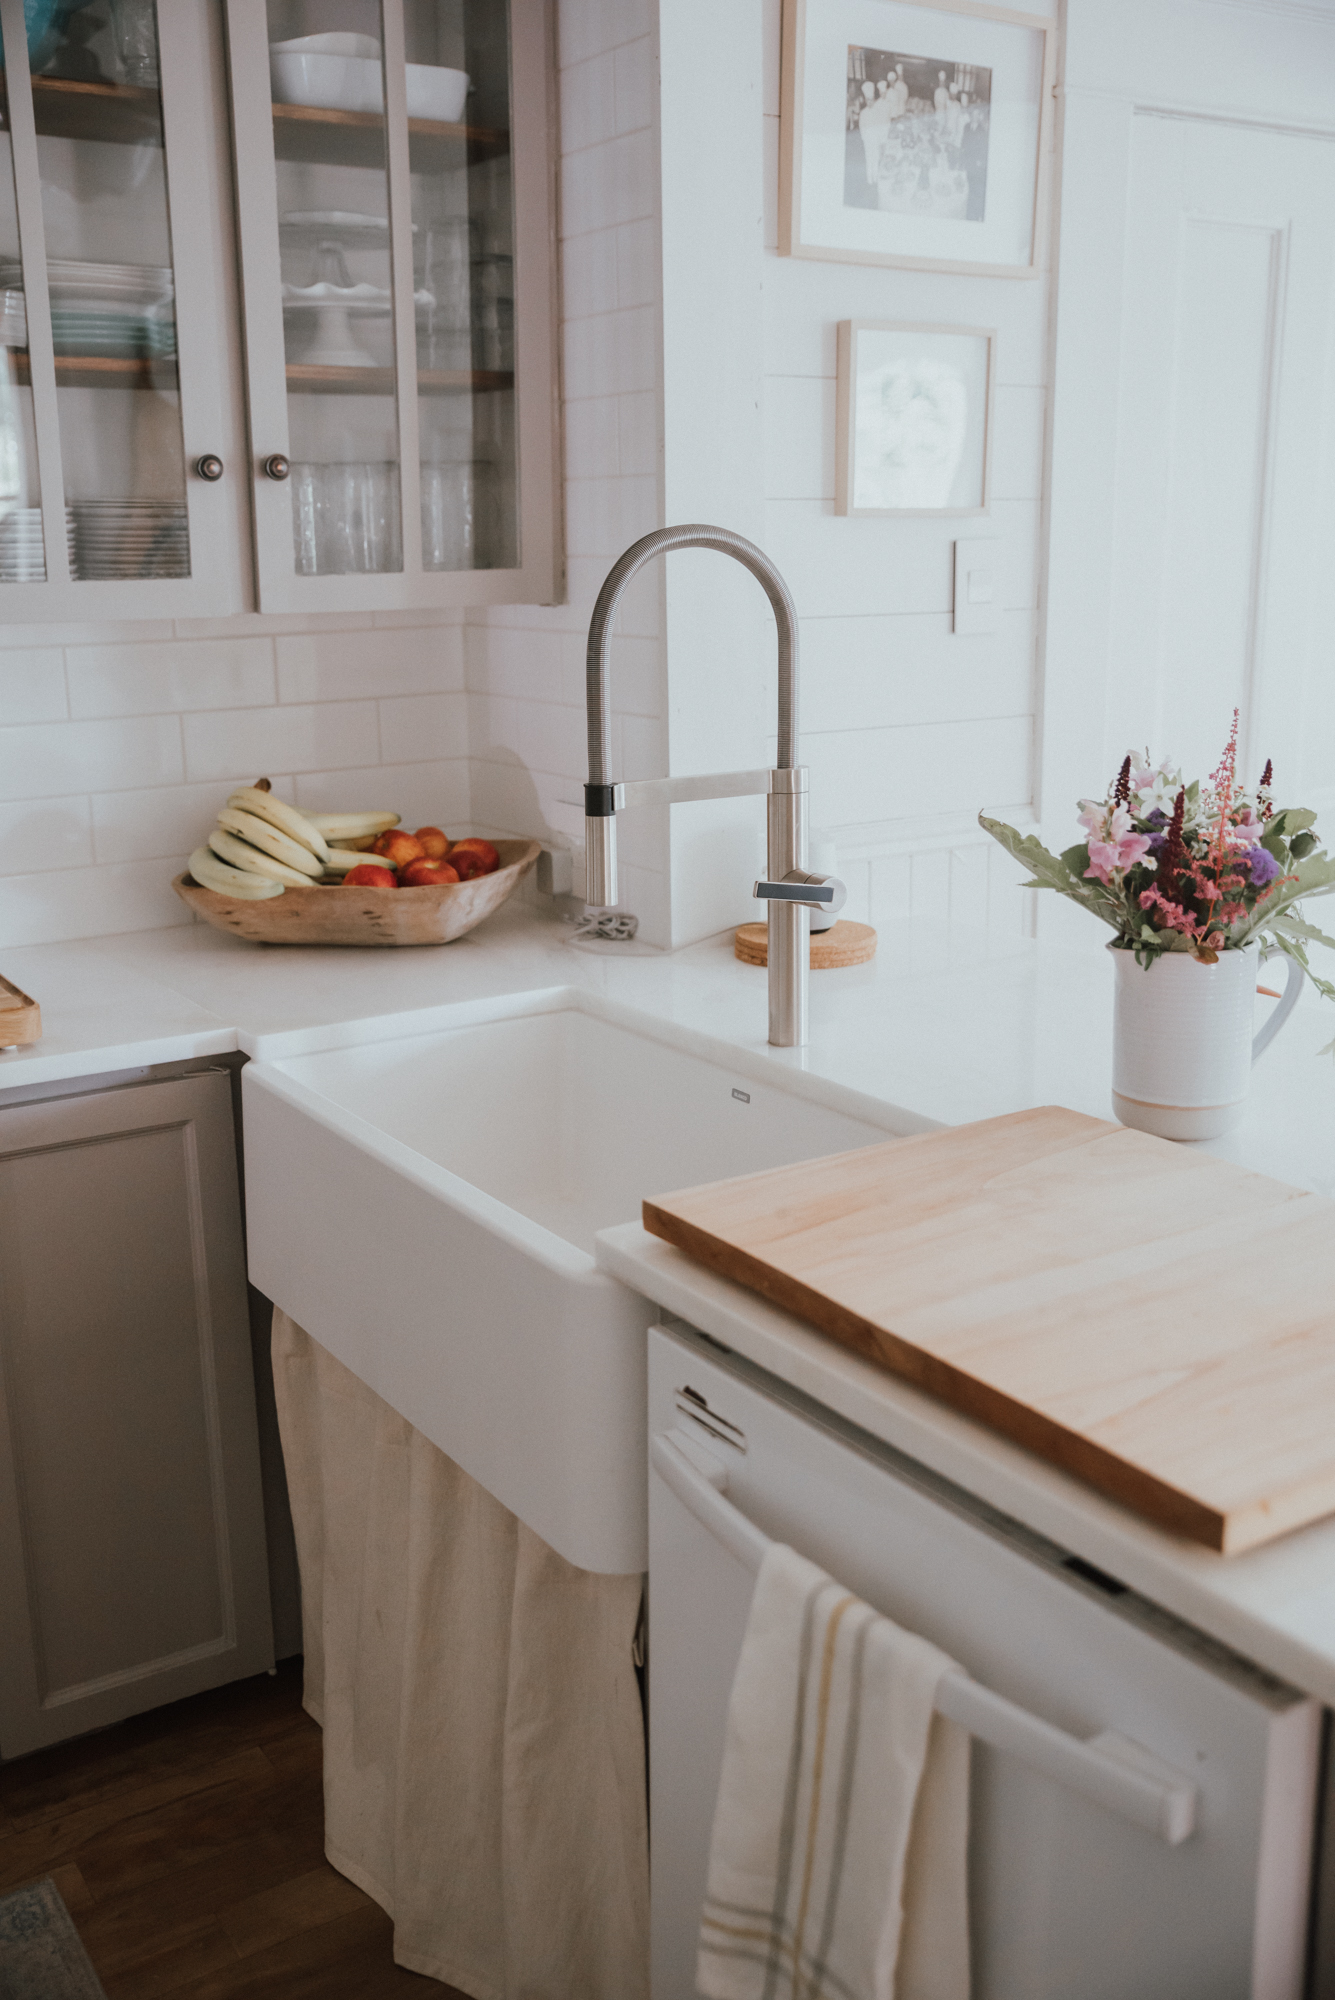 The Wild Decoelis| Our Kitchen Reno : Before and after | farmhouse sink